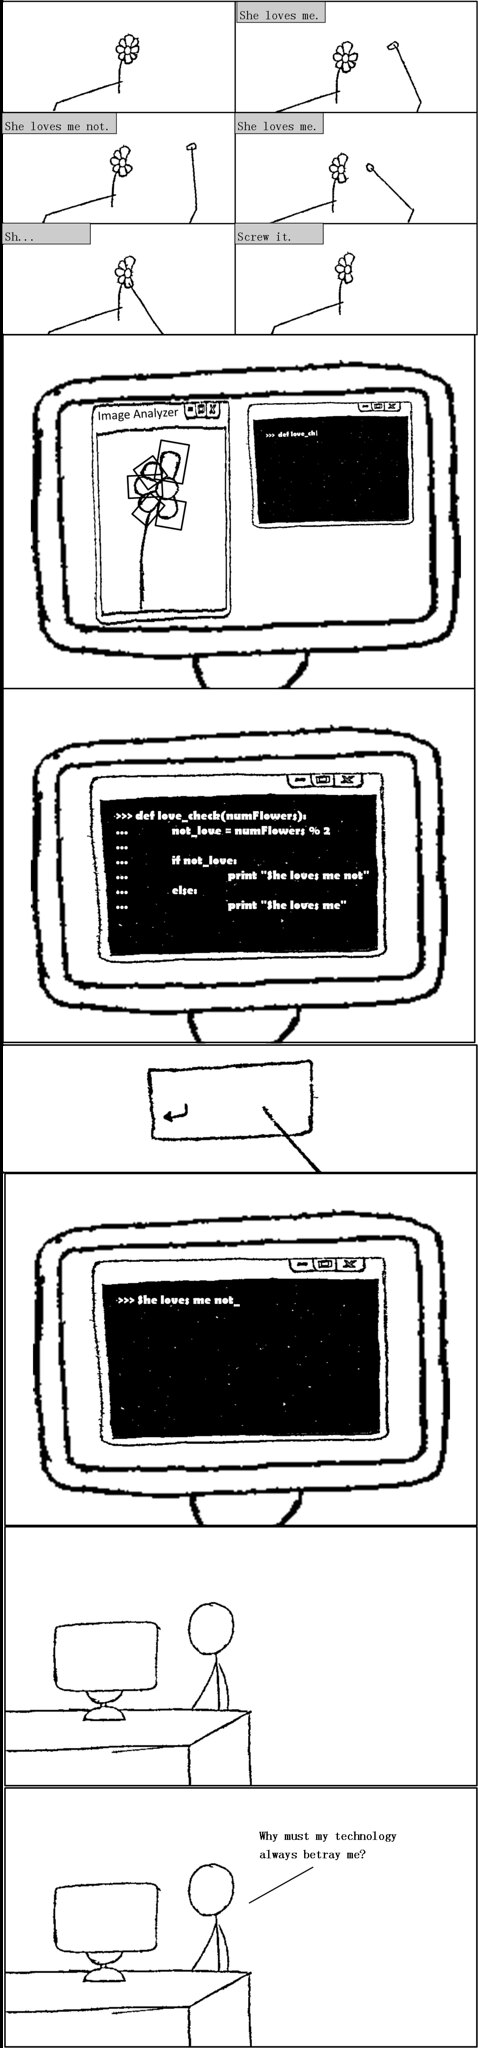 A computer is a fickle friend